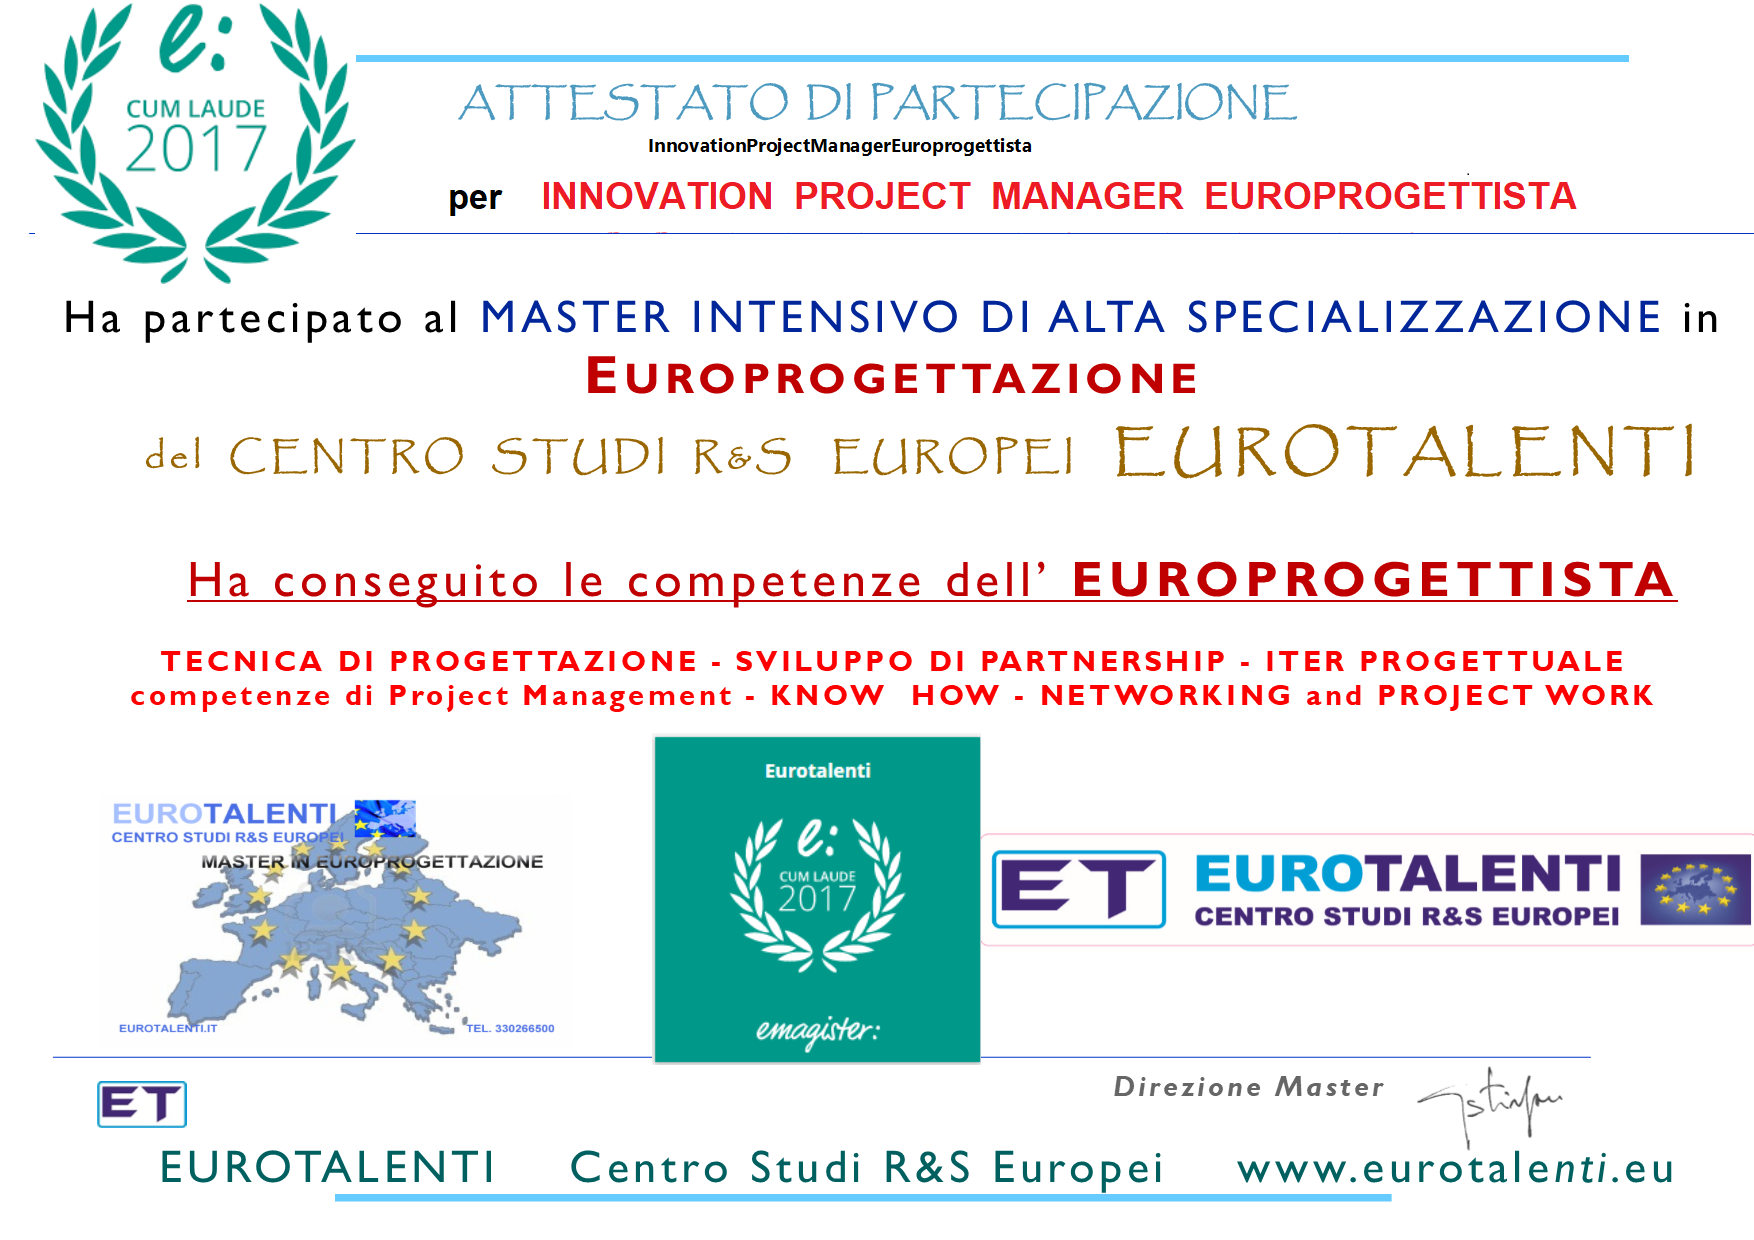 Scopri come diventare Innovation Project Manager Europrogettista certificato